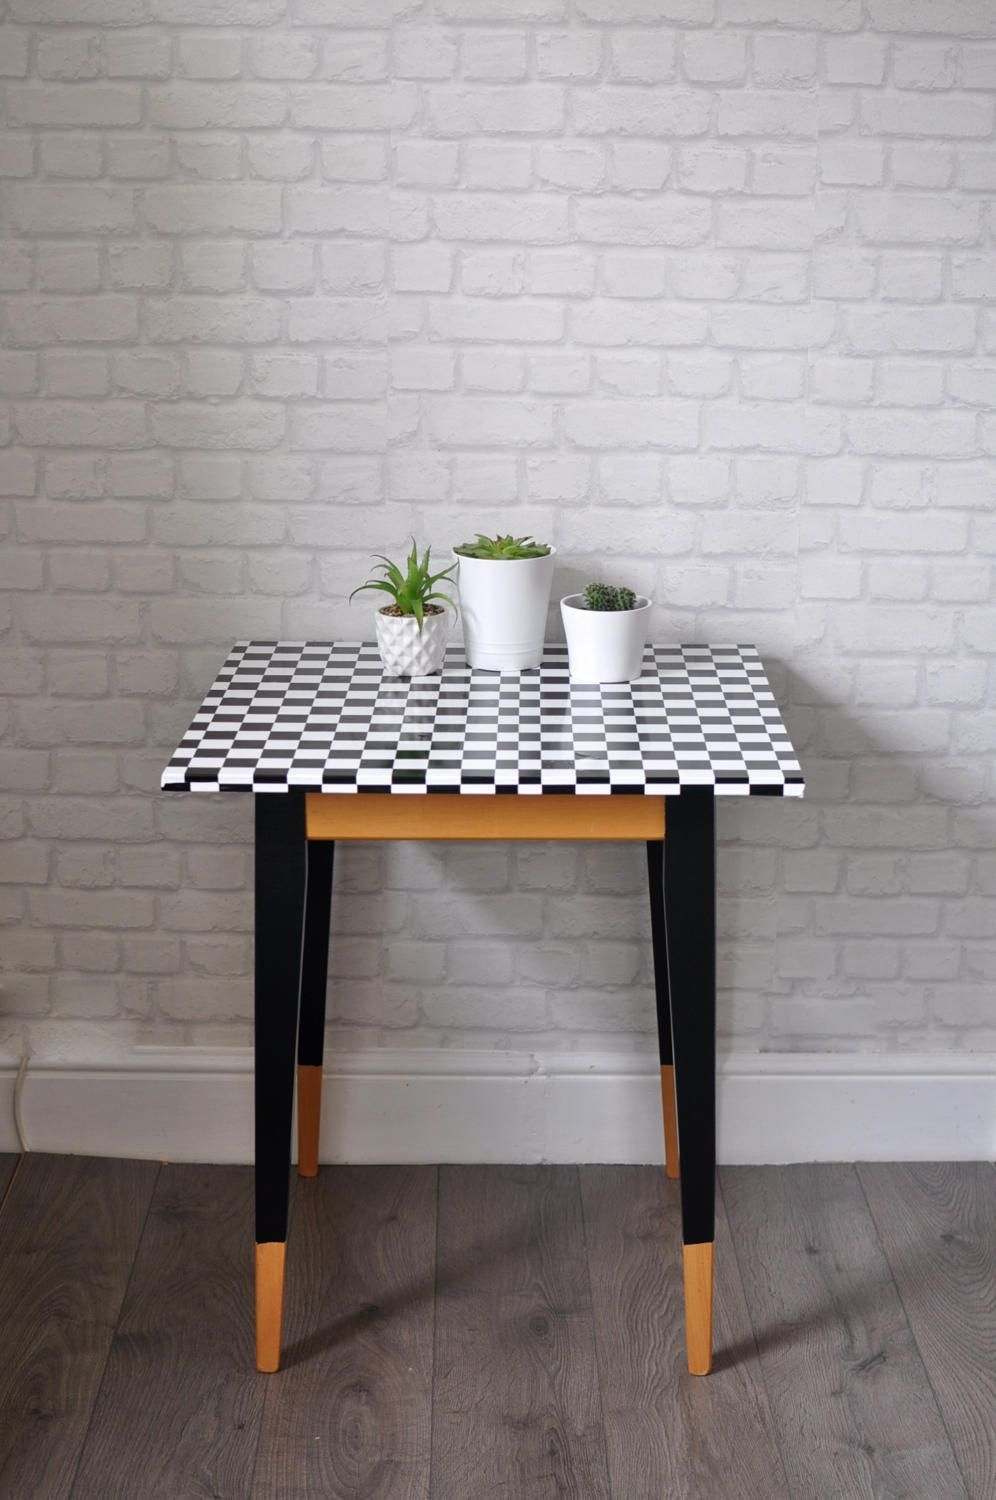 Upcycled Vintage Small Kitchen Table Side Table In Black And White Checkthriftysretro On